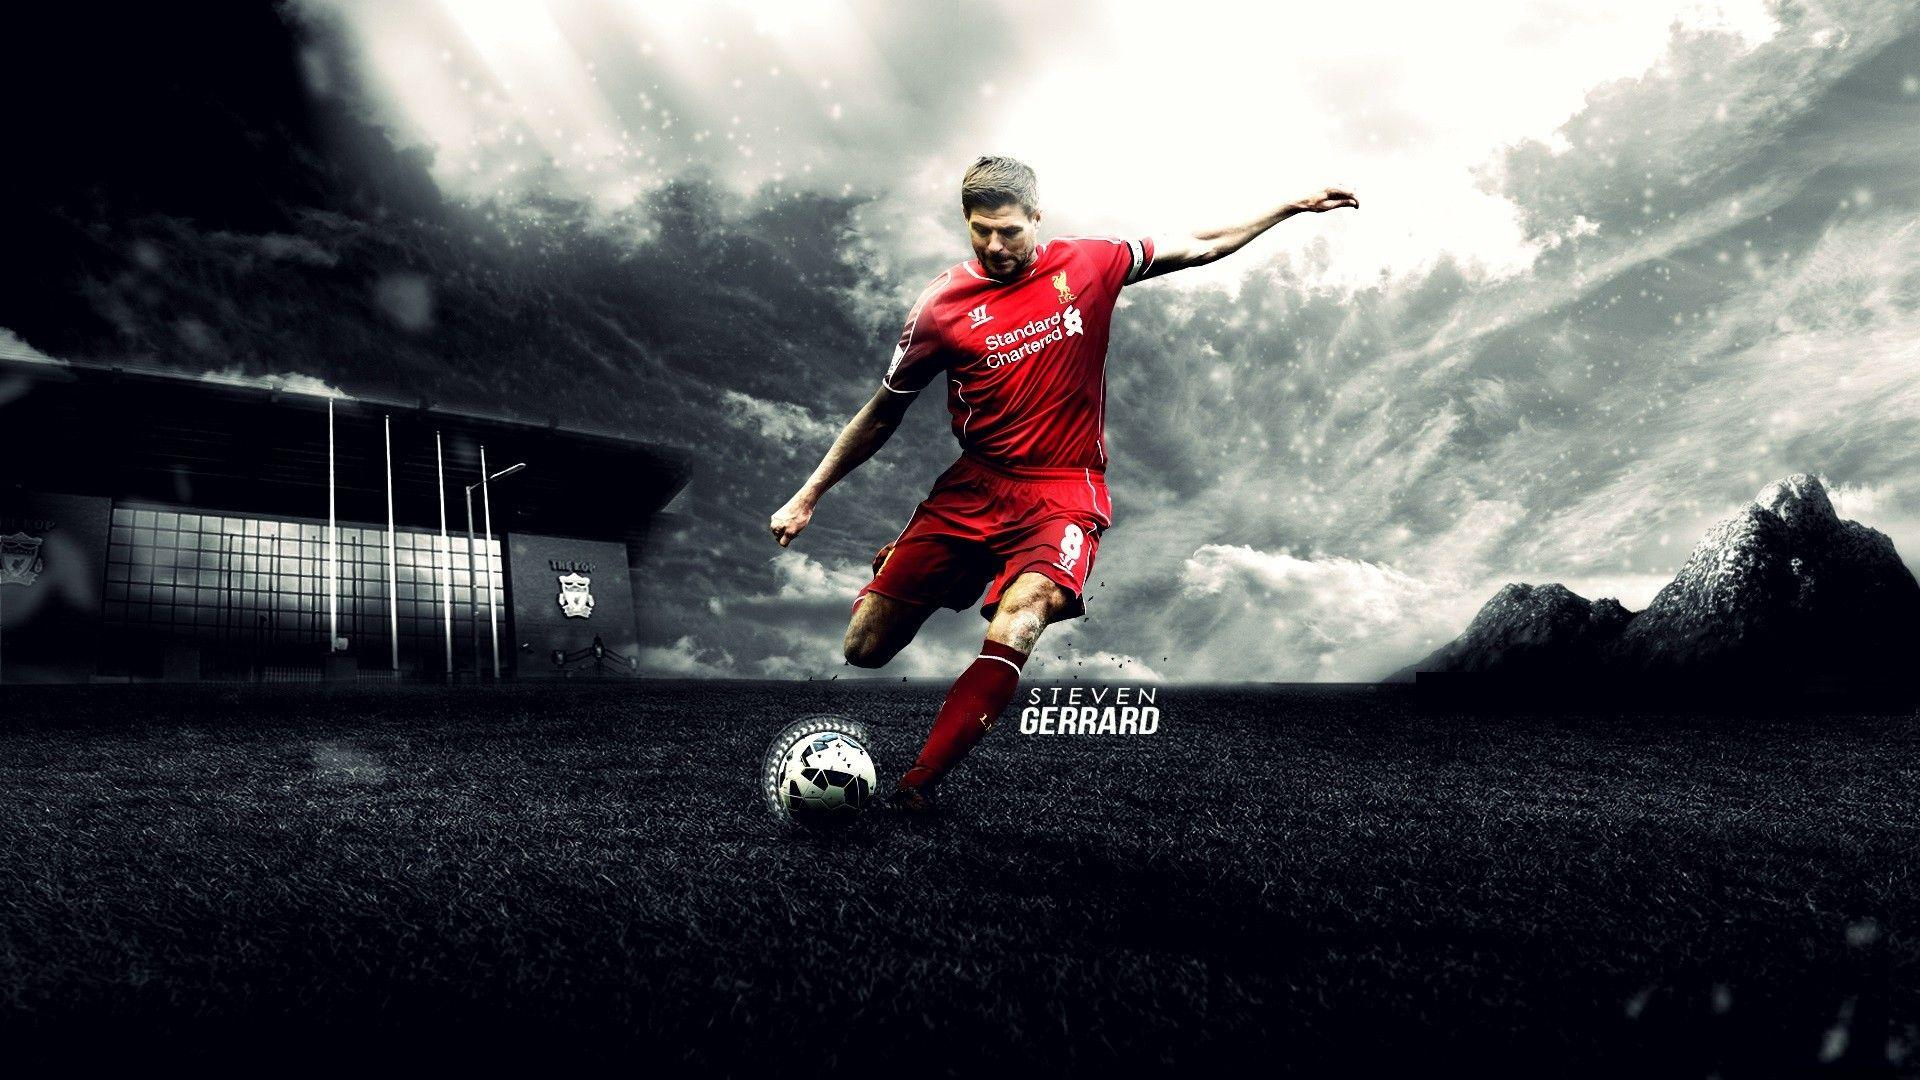 cool soccer wallpapers - HD1920×1080